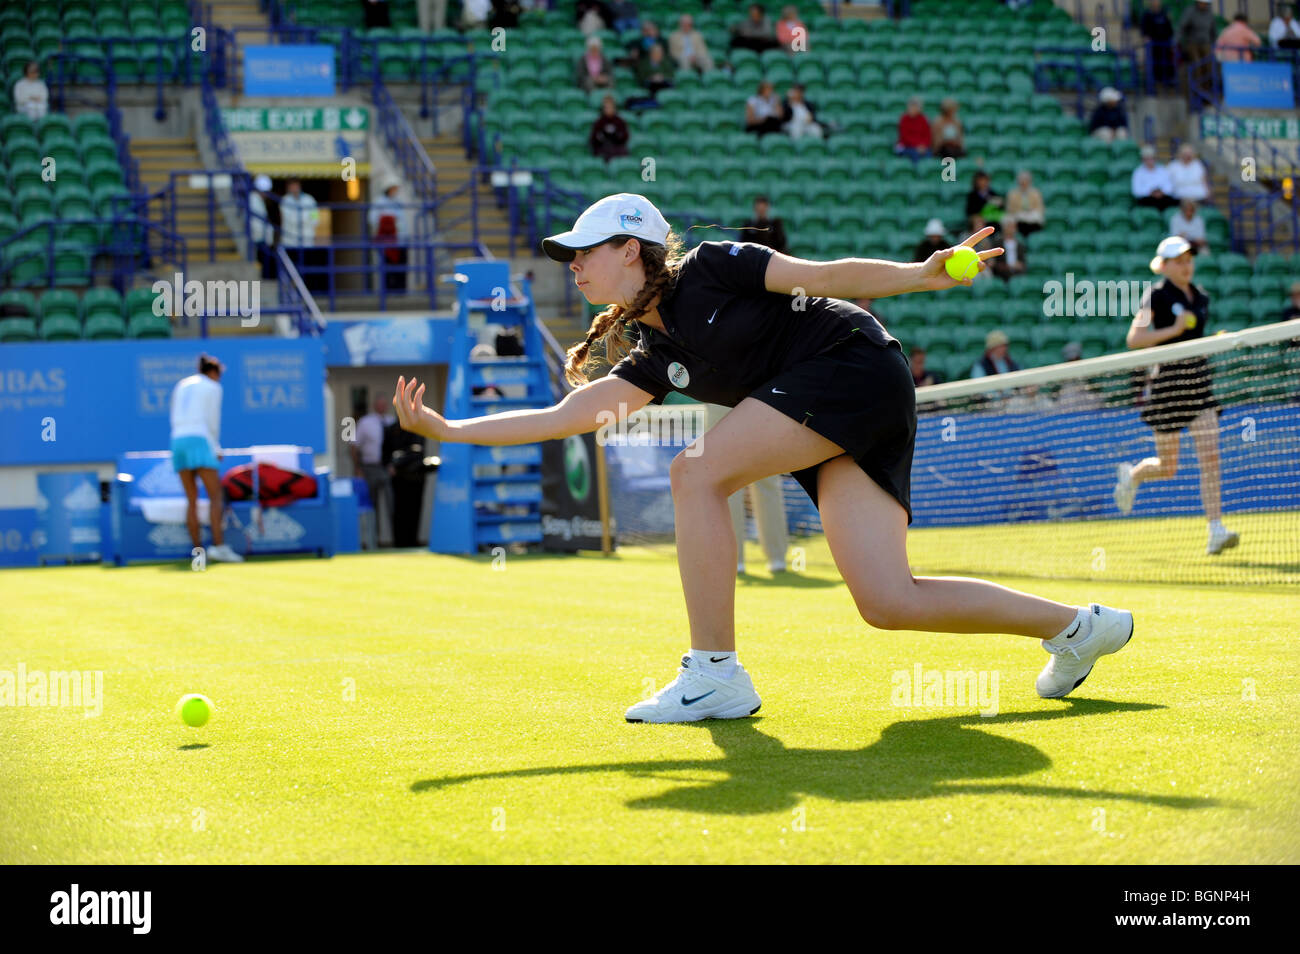 A ball girls throws balls up the court ready for the next match at the Aegon International 2009 Tennis Championships - Stock Image